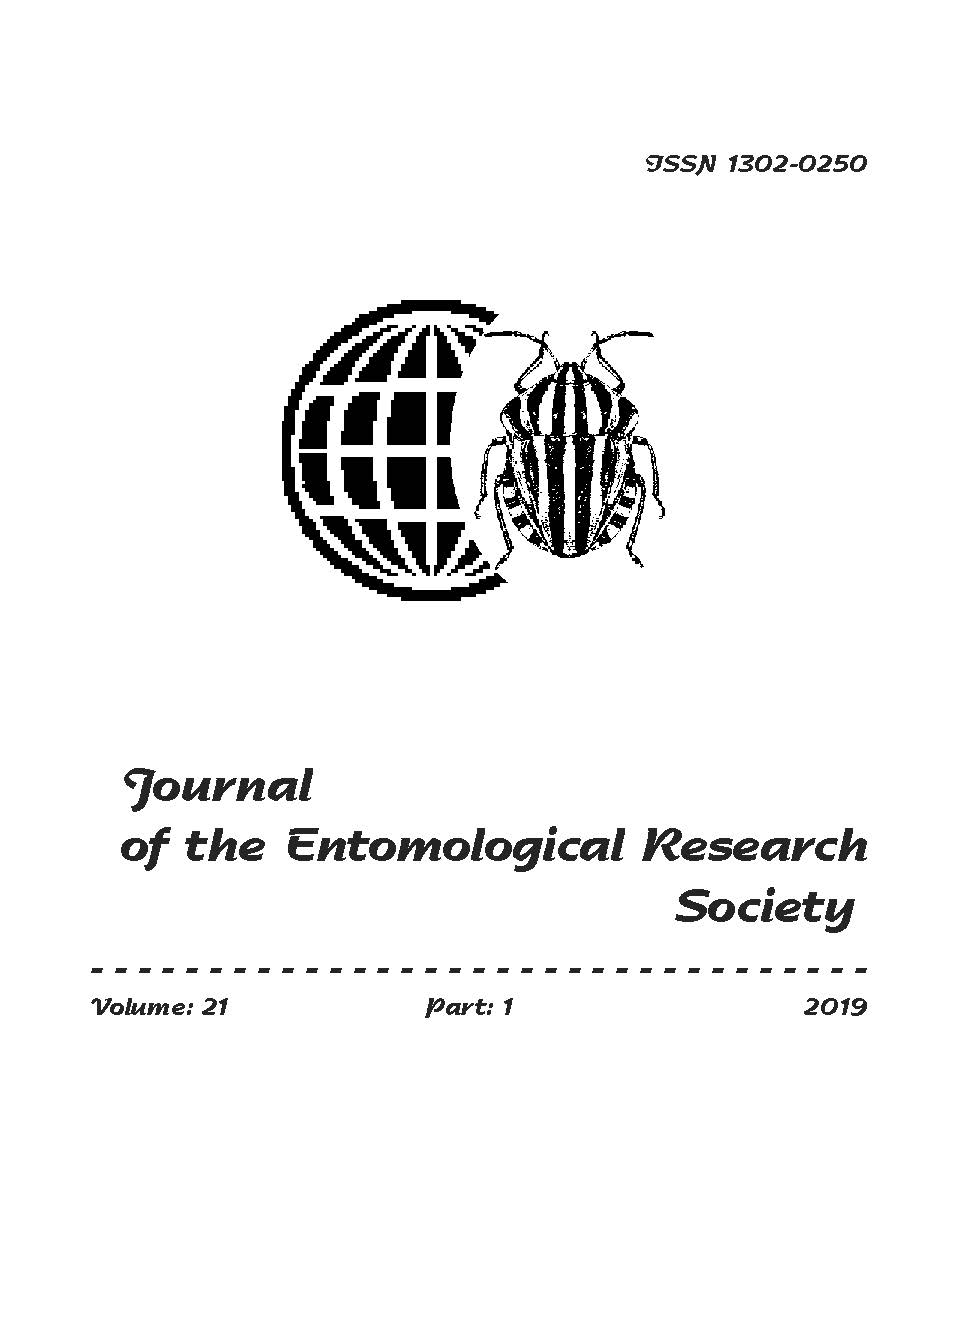 View Vol. 21 No. 1 (2019): Journal of the Entomological Research Society